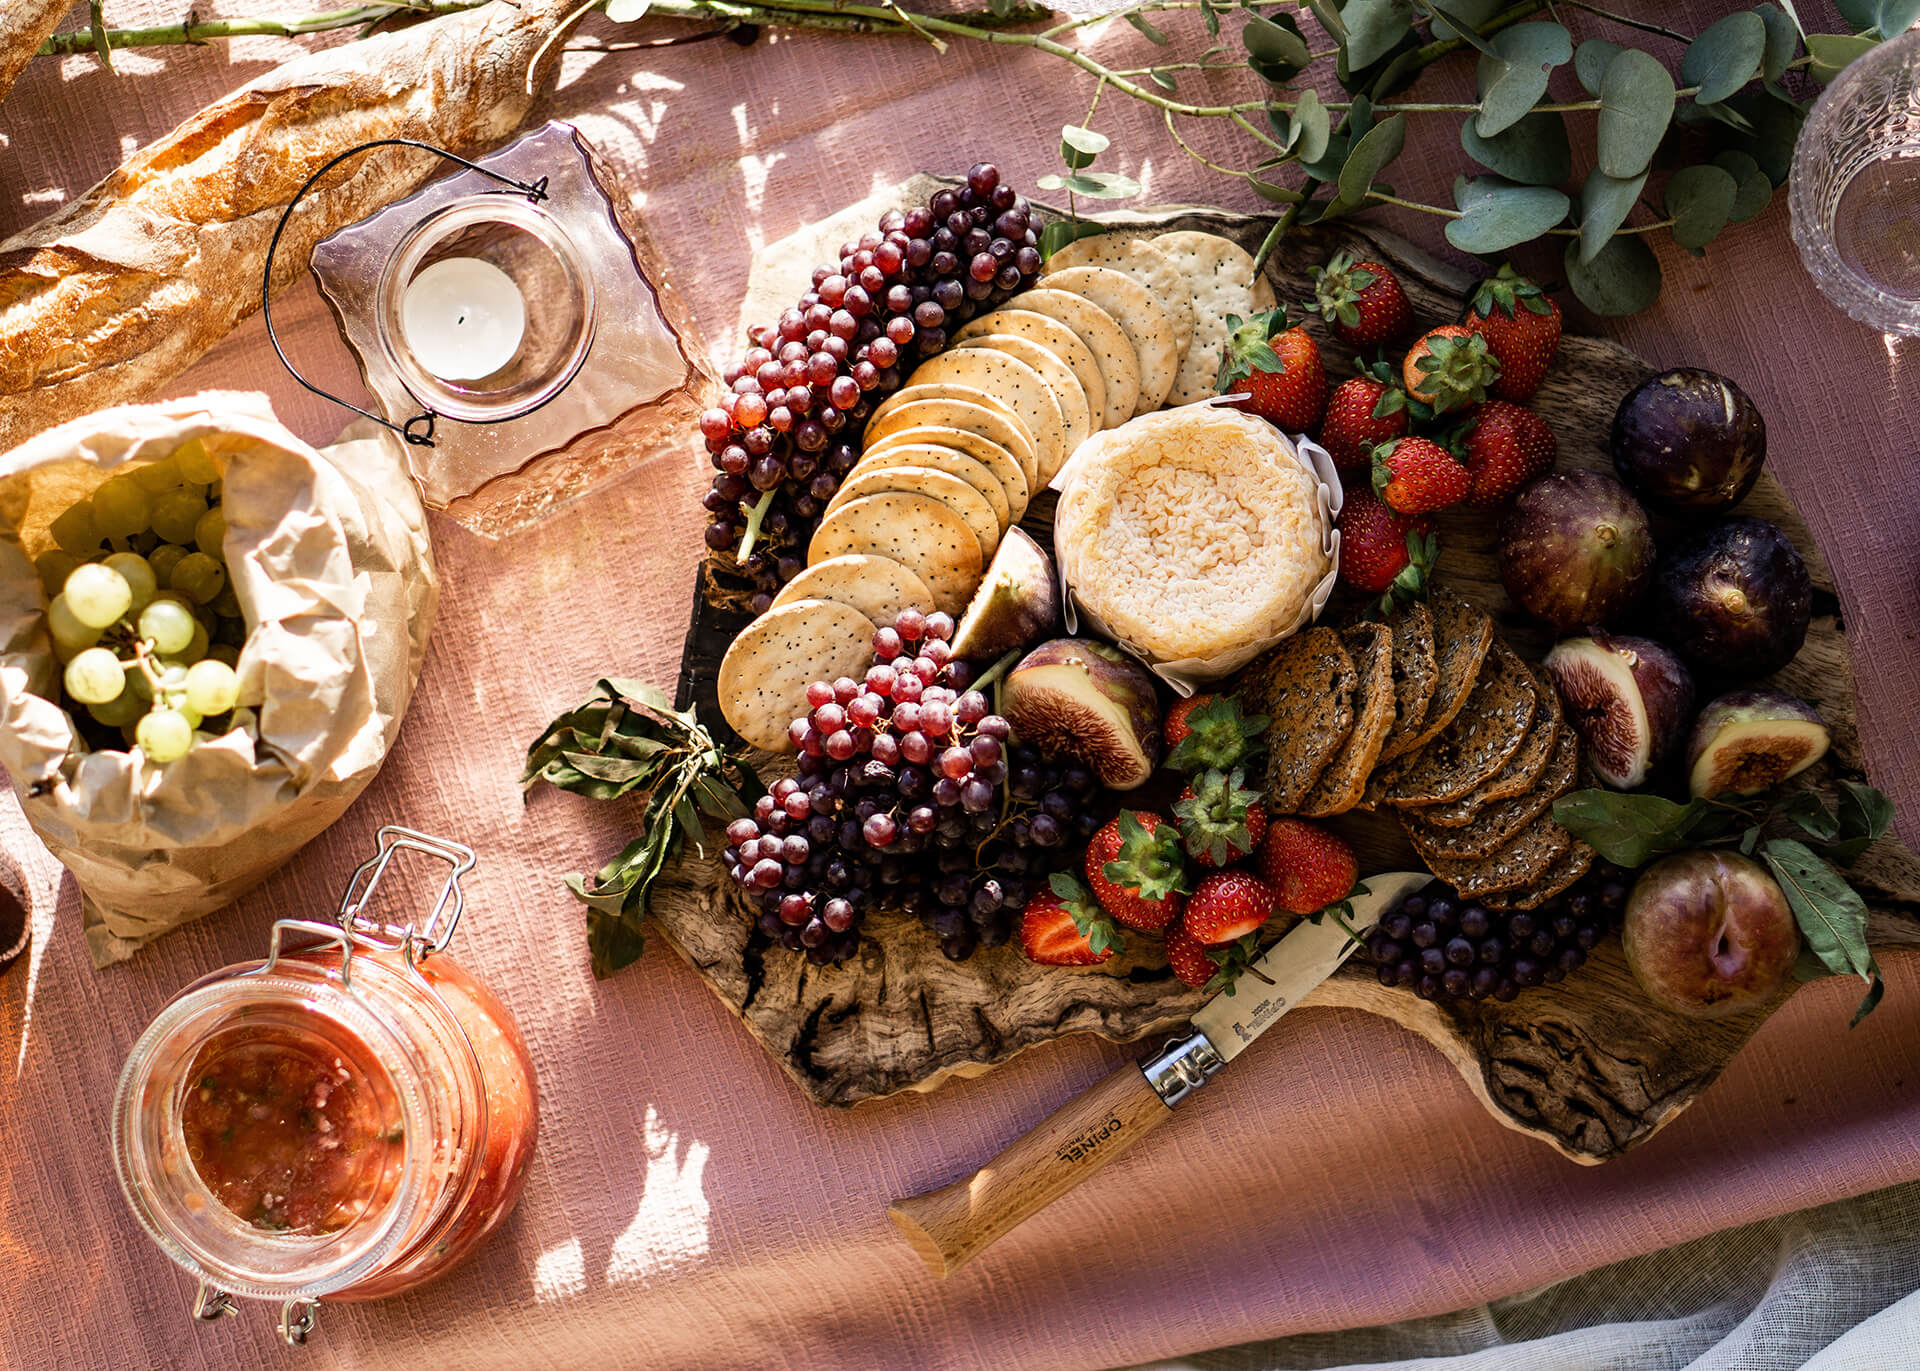 romantic picnic with assortment of food